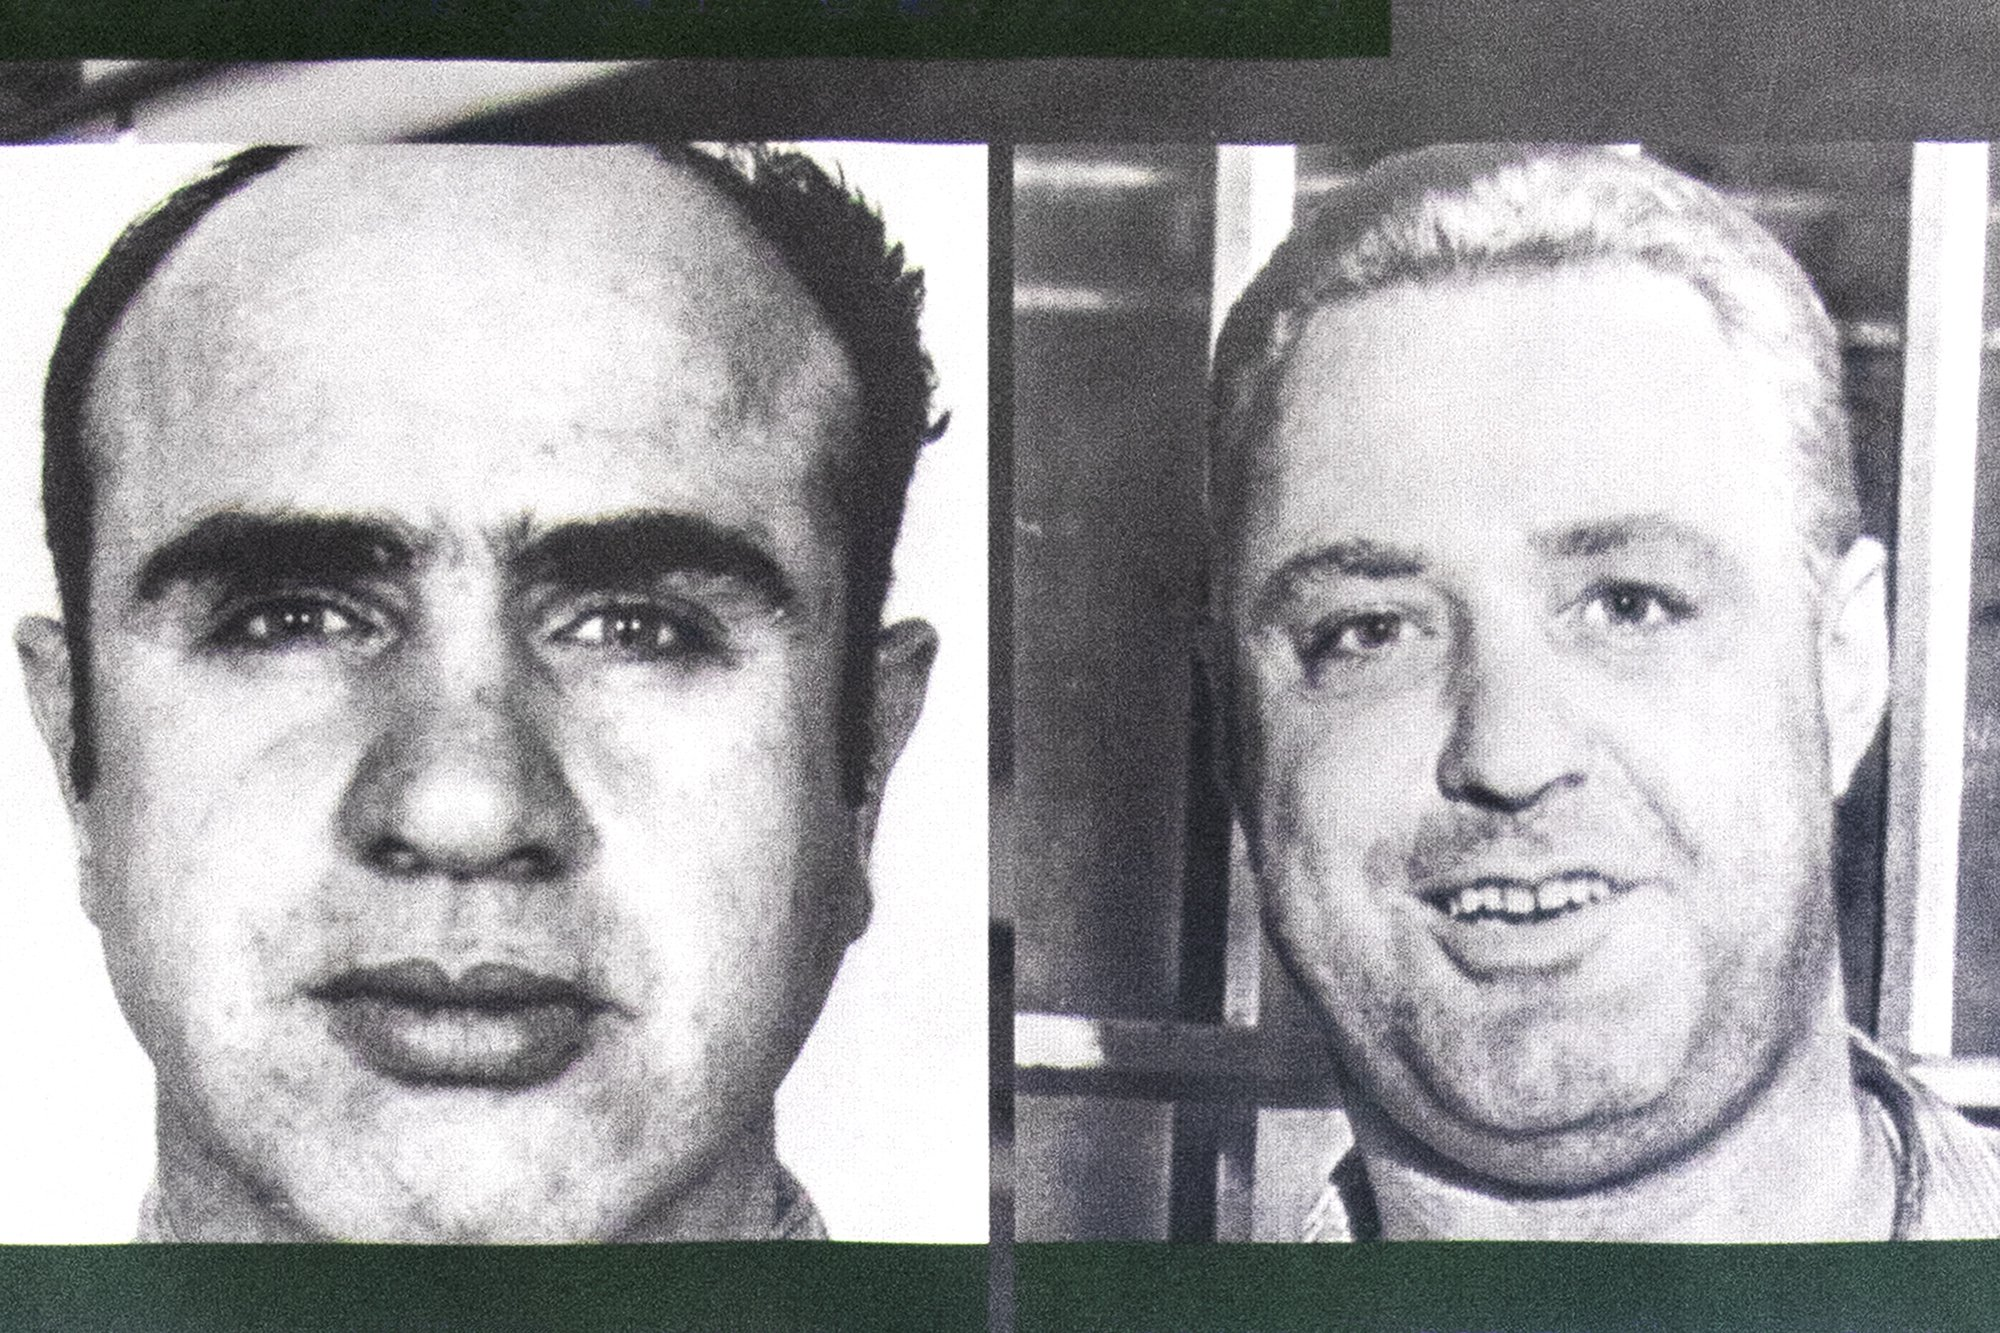 Famous Alcatraz prisoners - Al Capone and Machine Gun Kelly